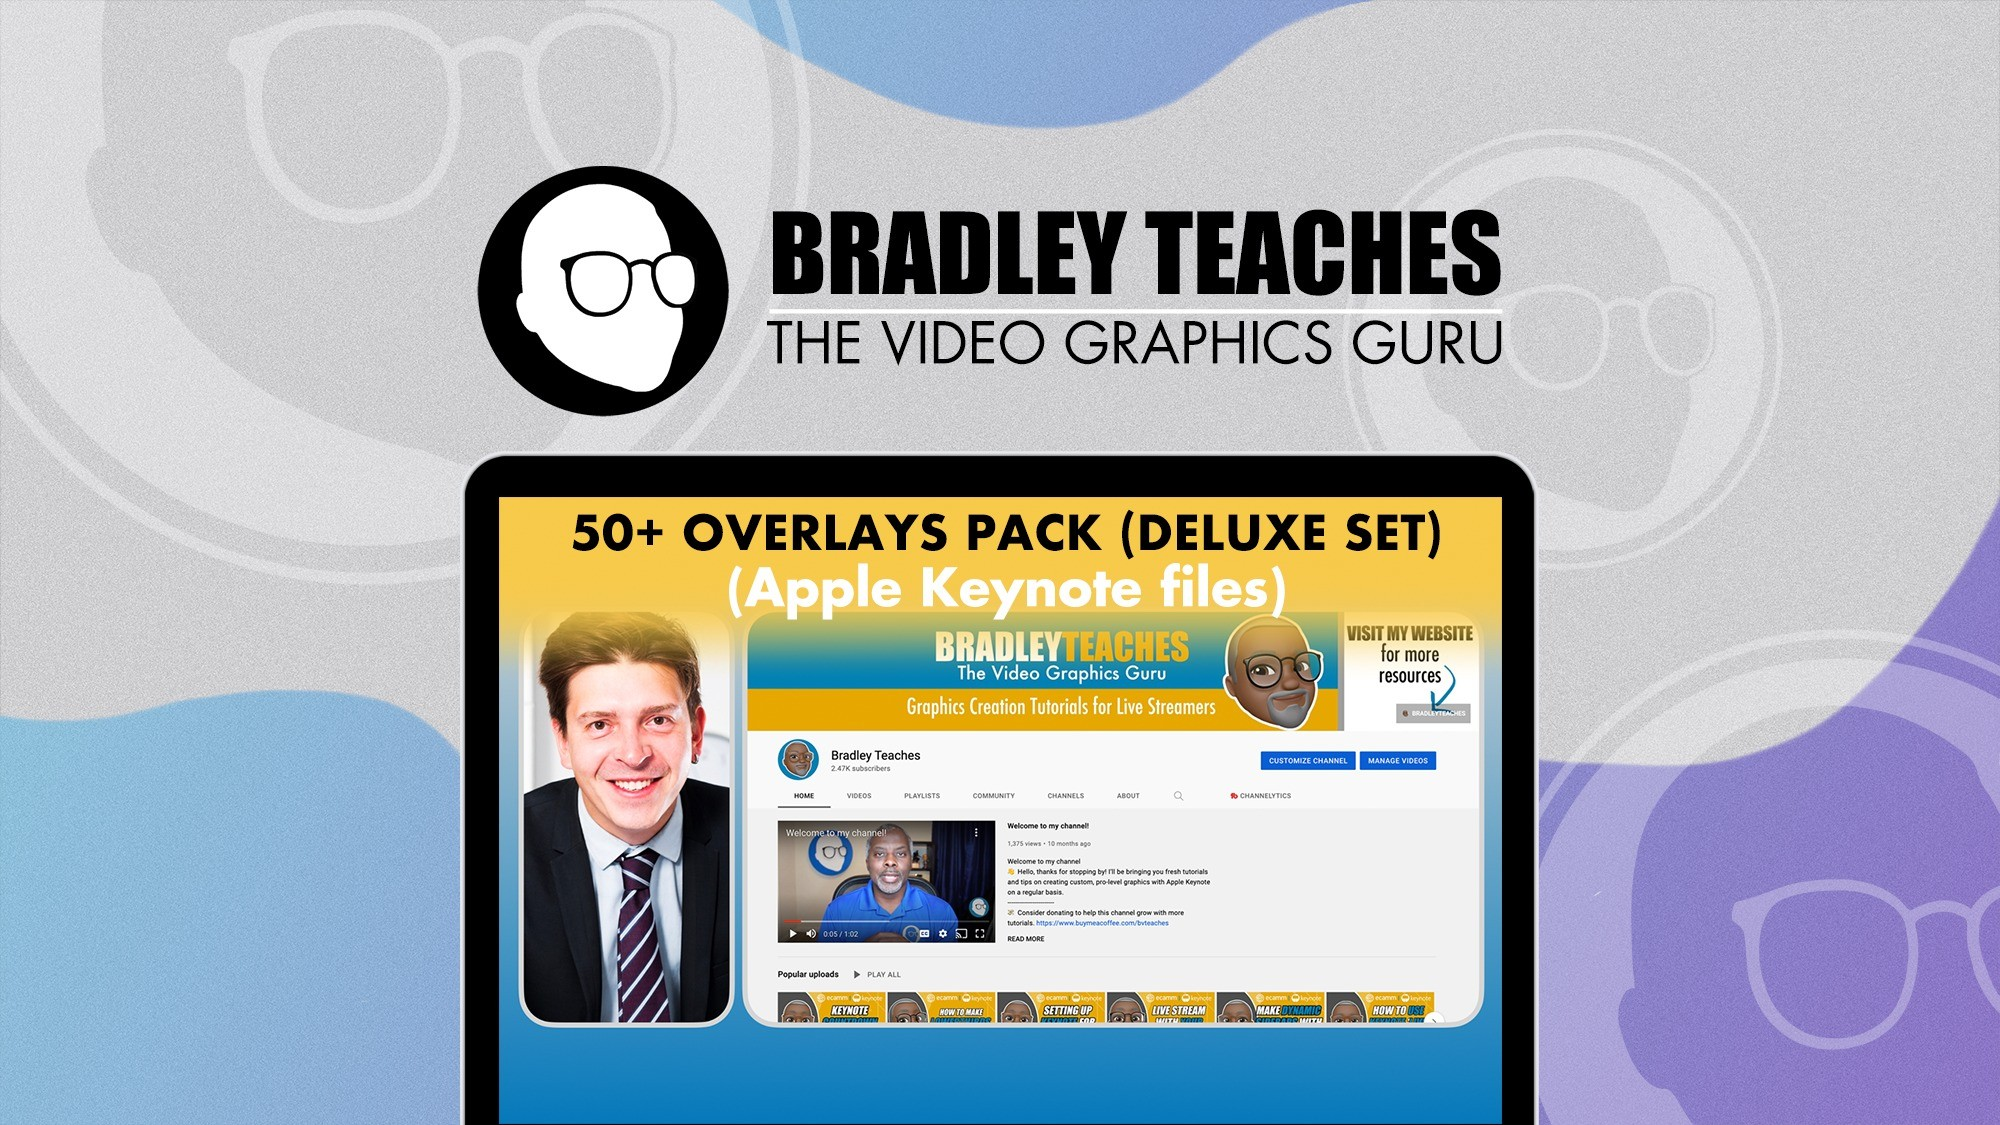 AppSumo Deal for 50+ Overlays Pack (Deluxe Set)